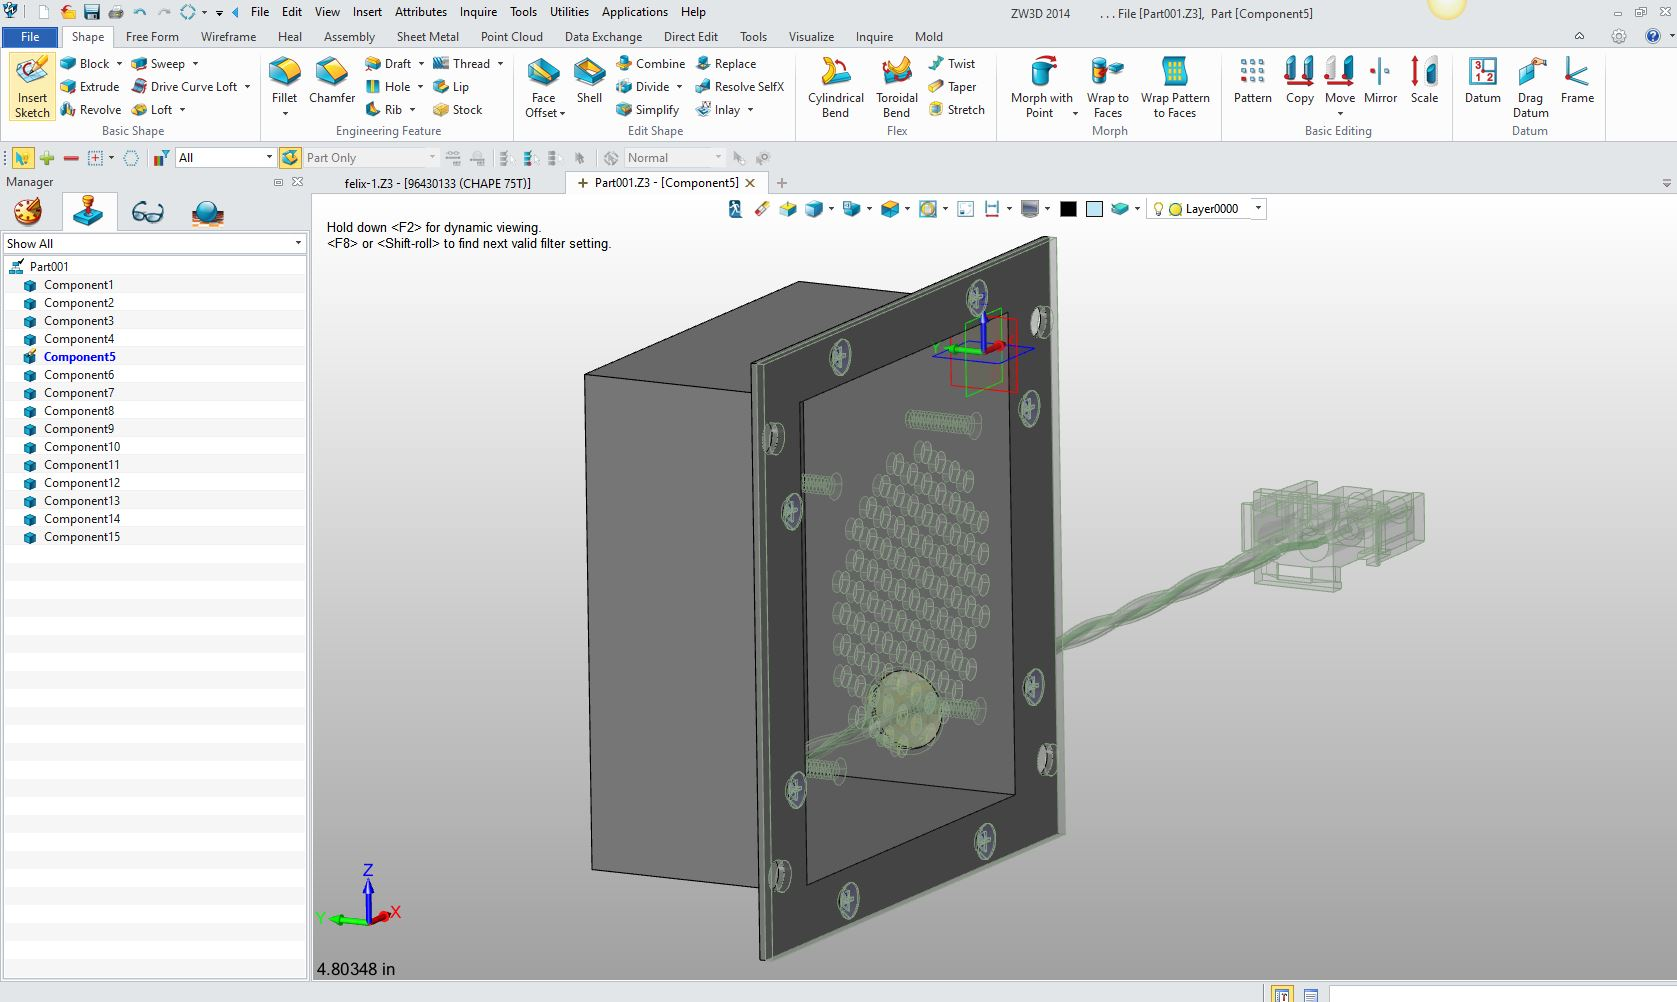 The Ultimate 3D CAD System!